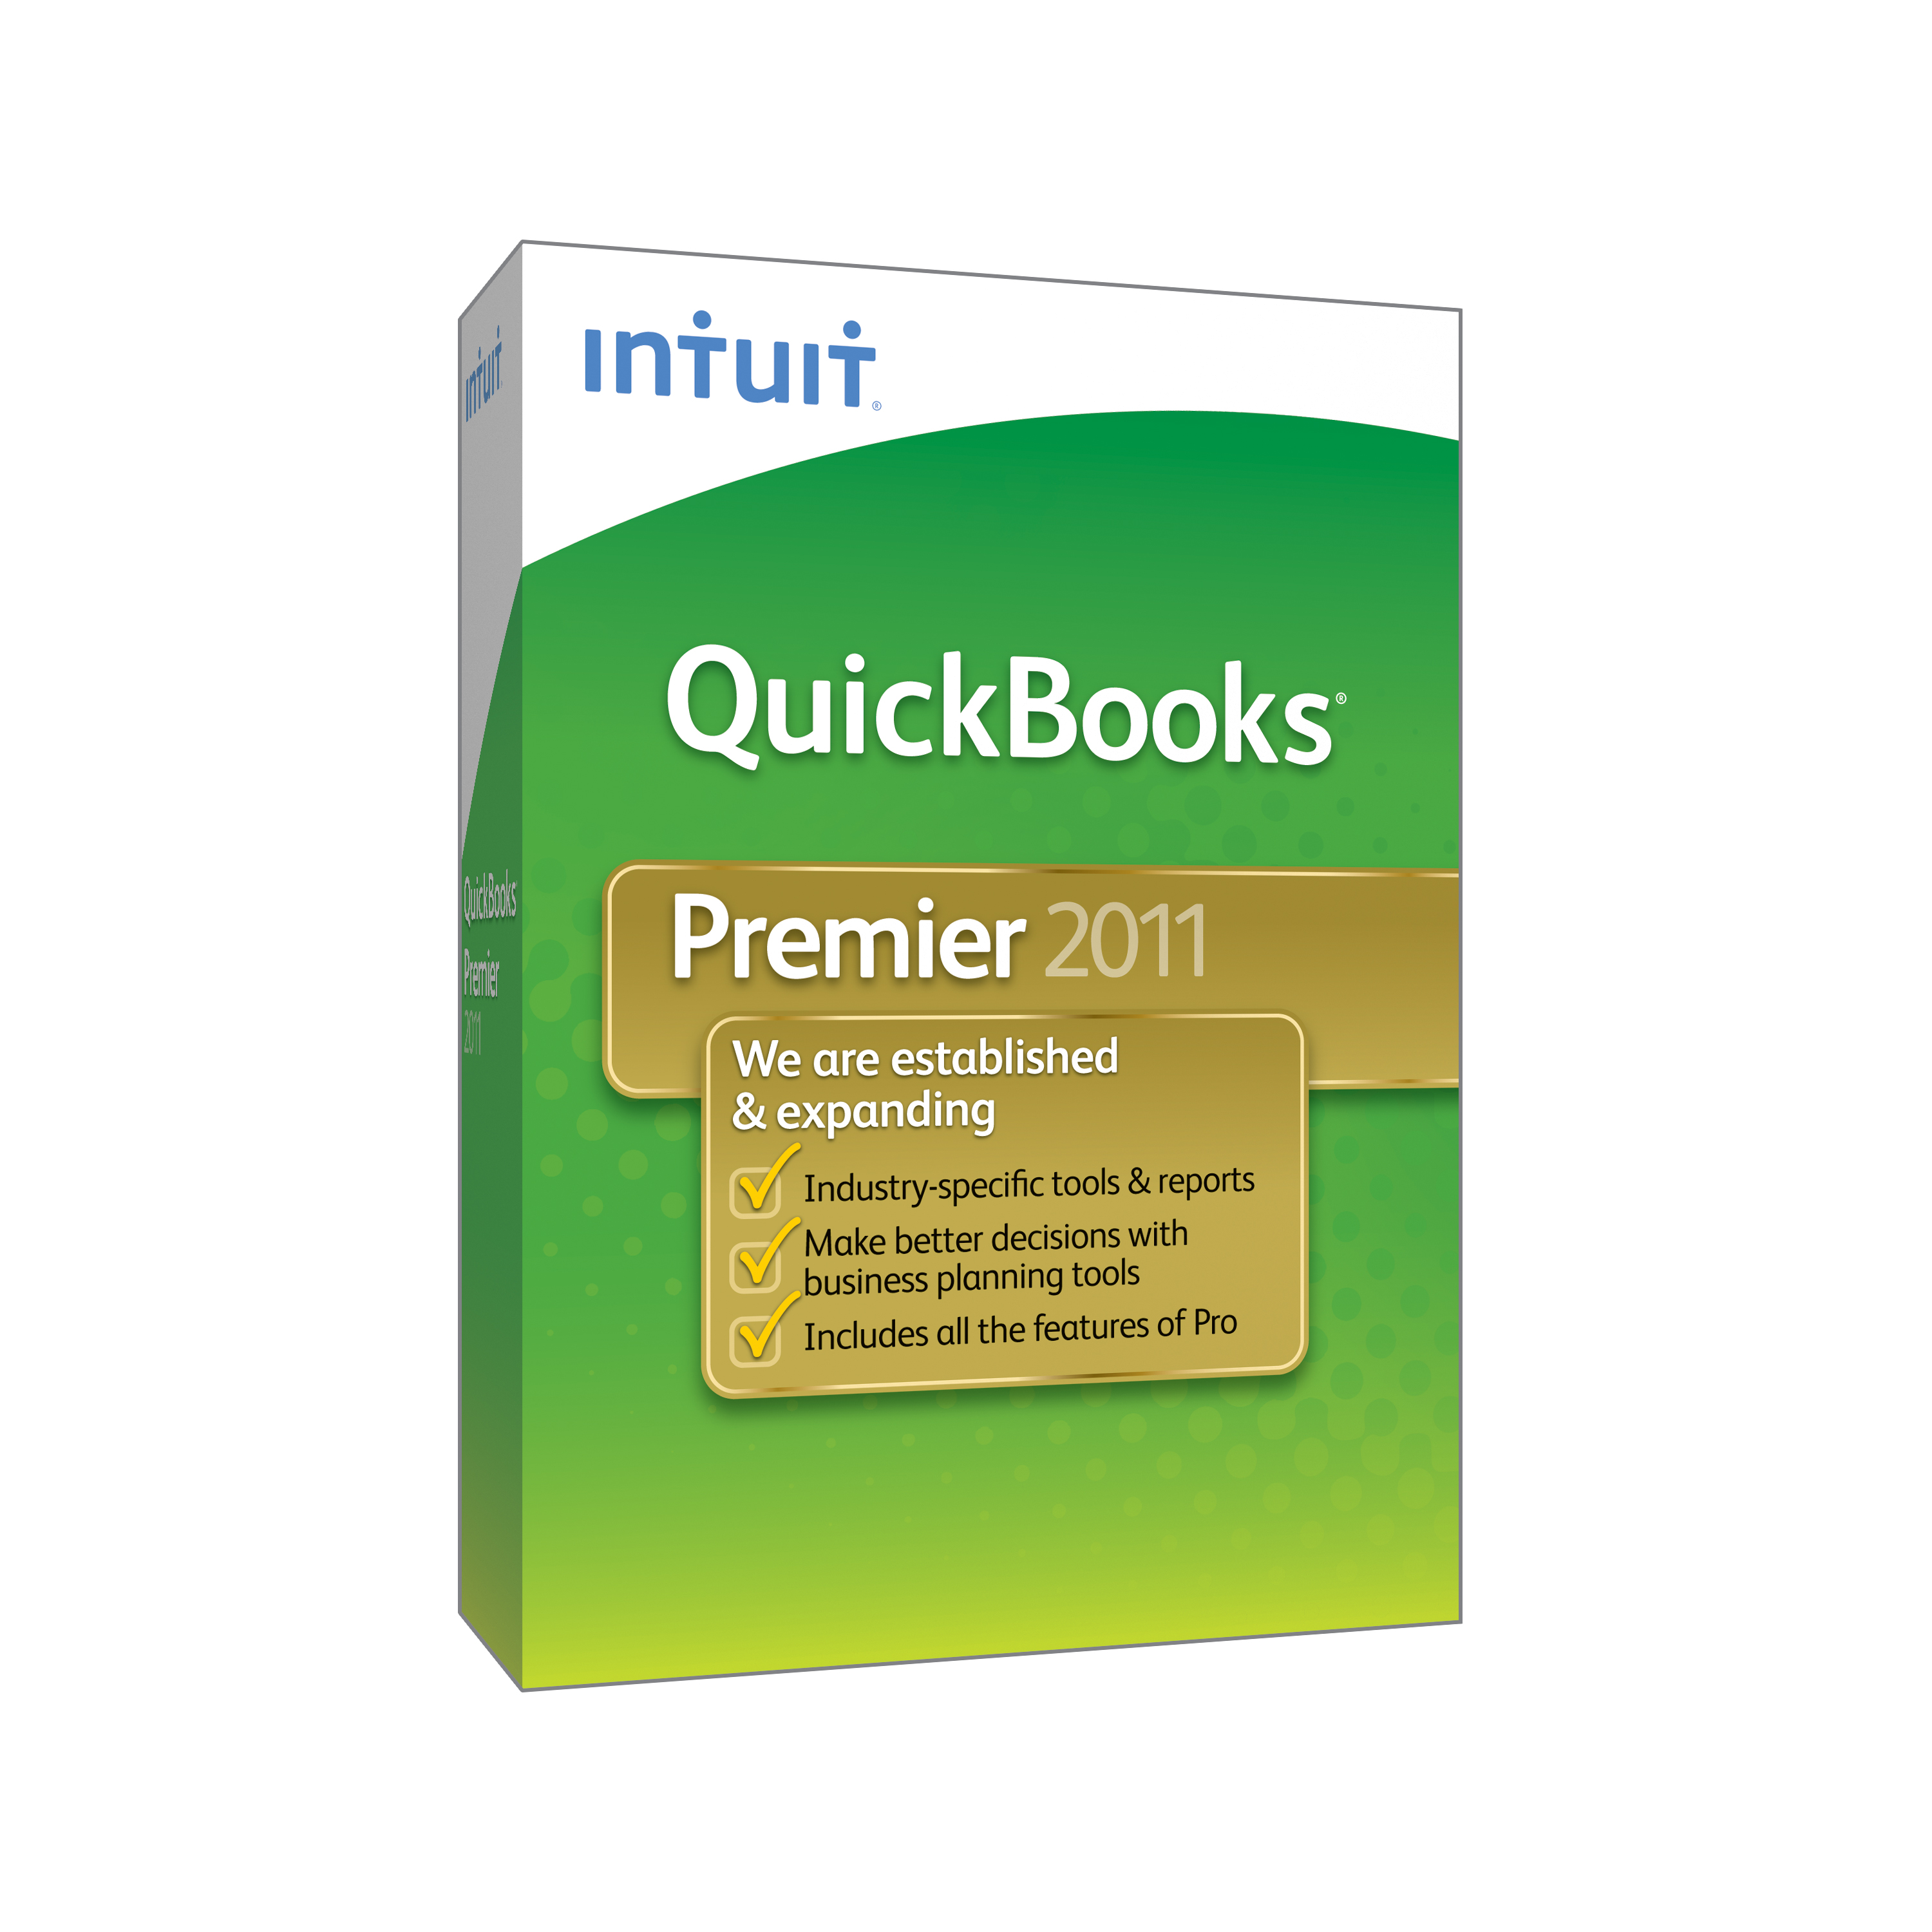 QuickBooks and Microsoft Office